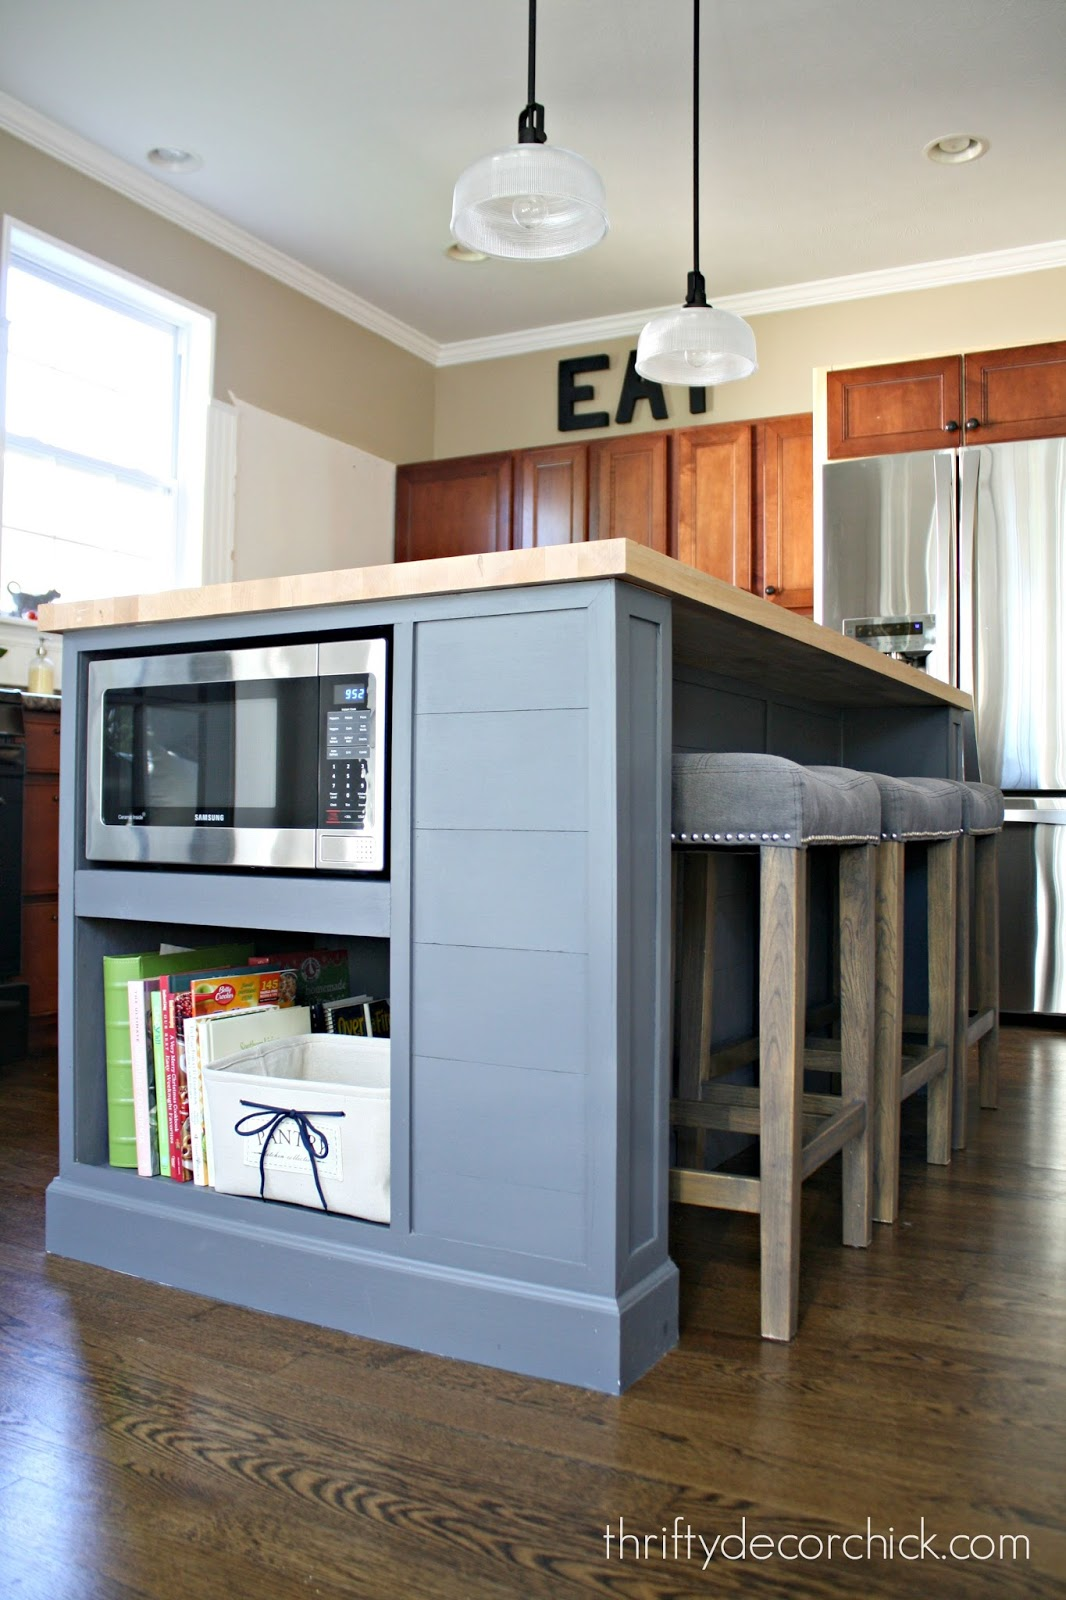 Kitchen island microwave - Adding Microwave In Island